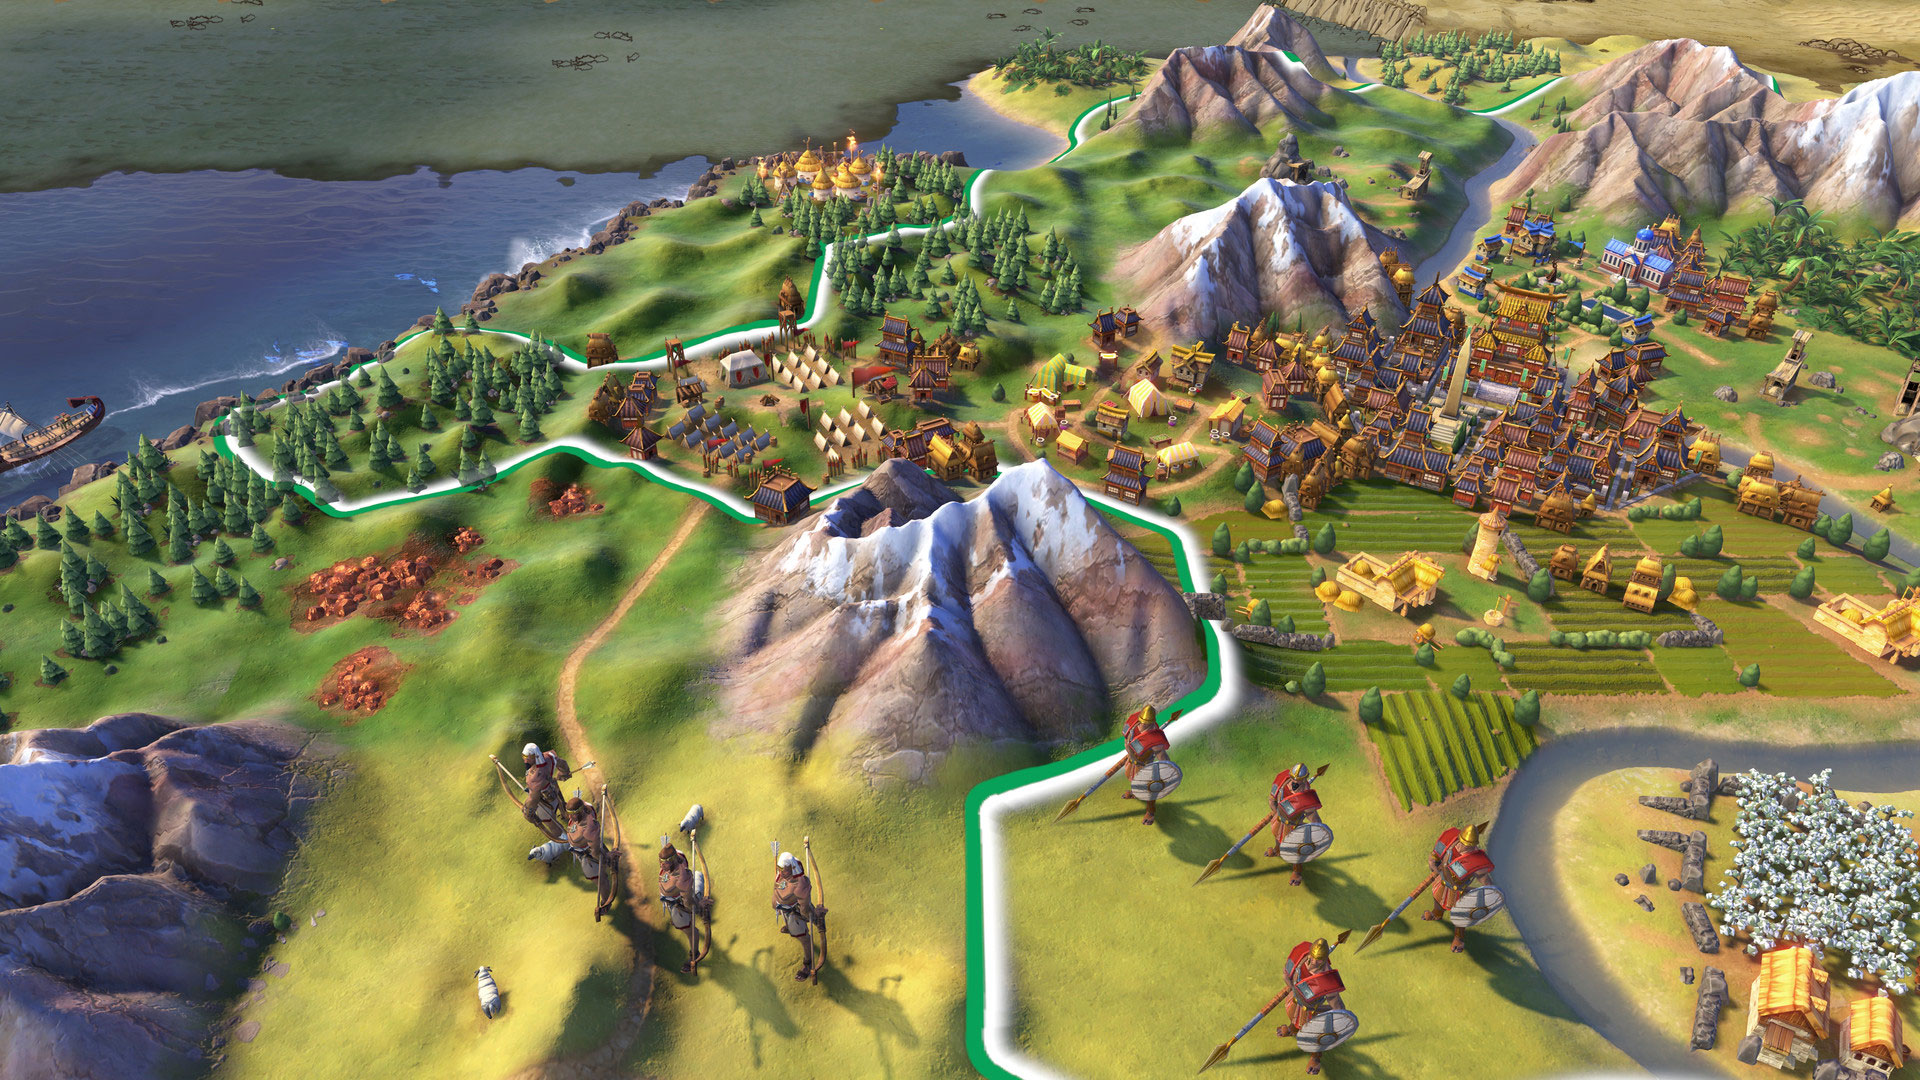 sid-meiers-civilization-vi-screenshots-01-large